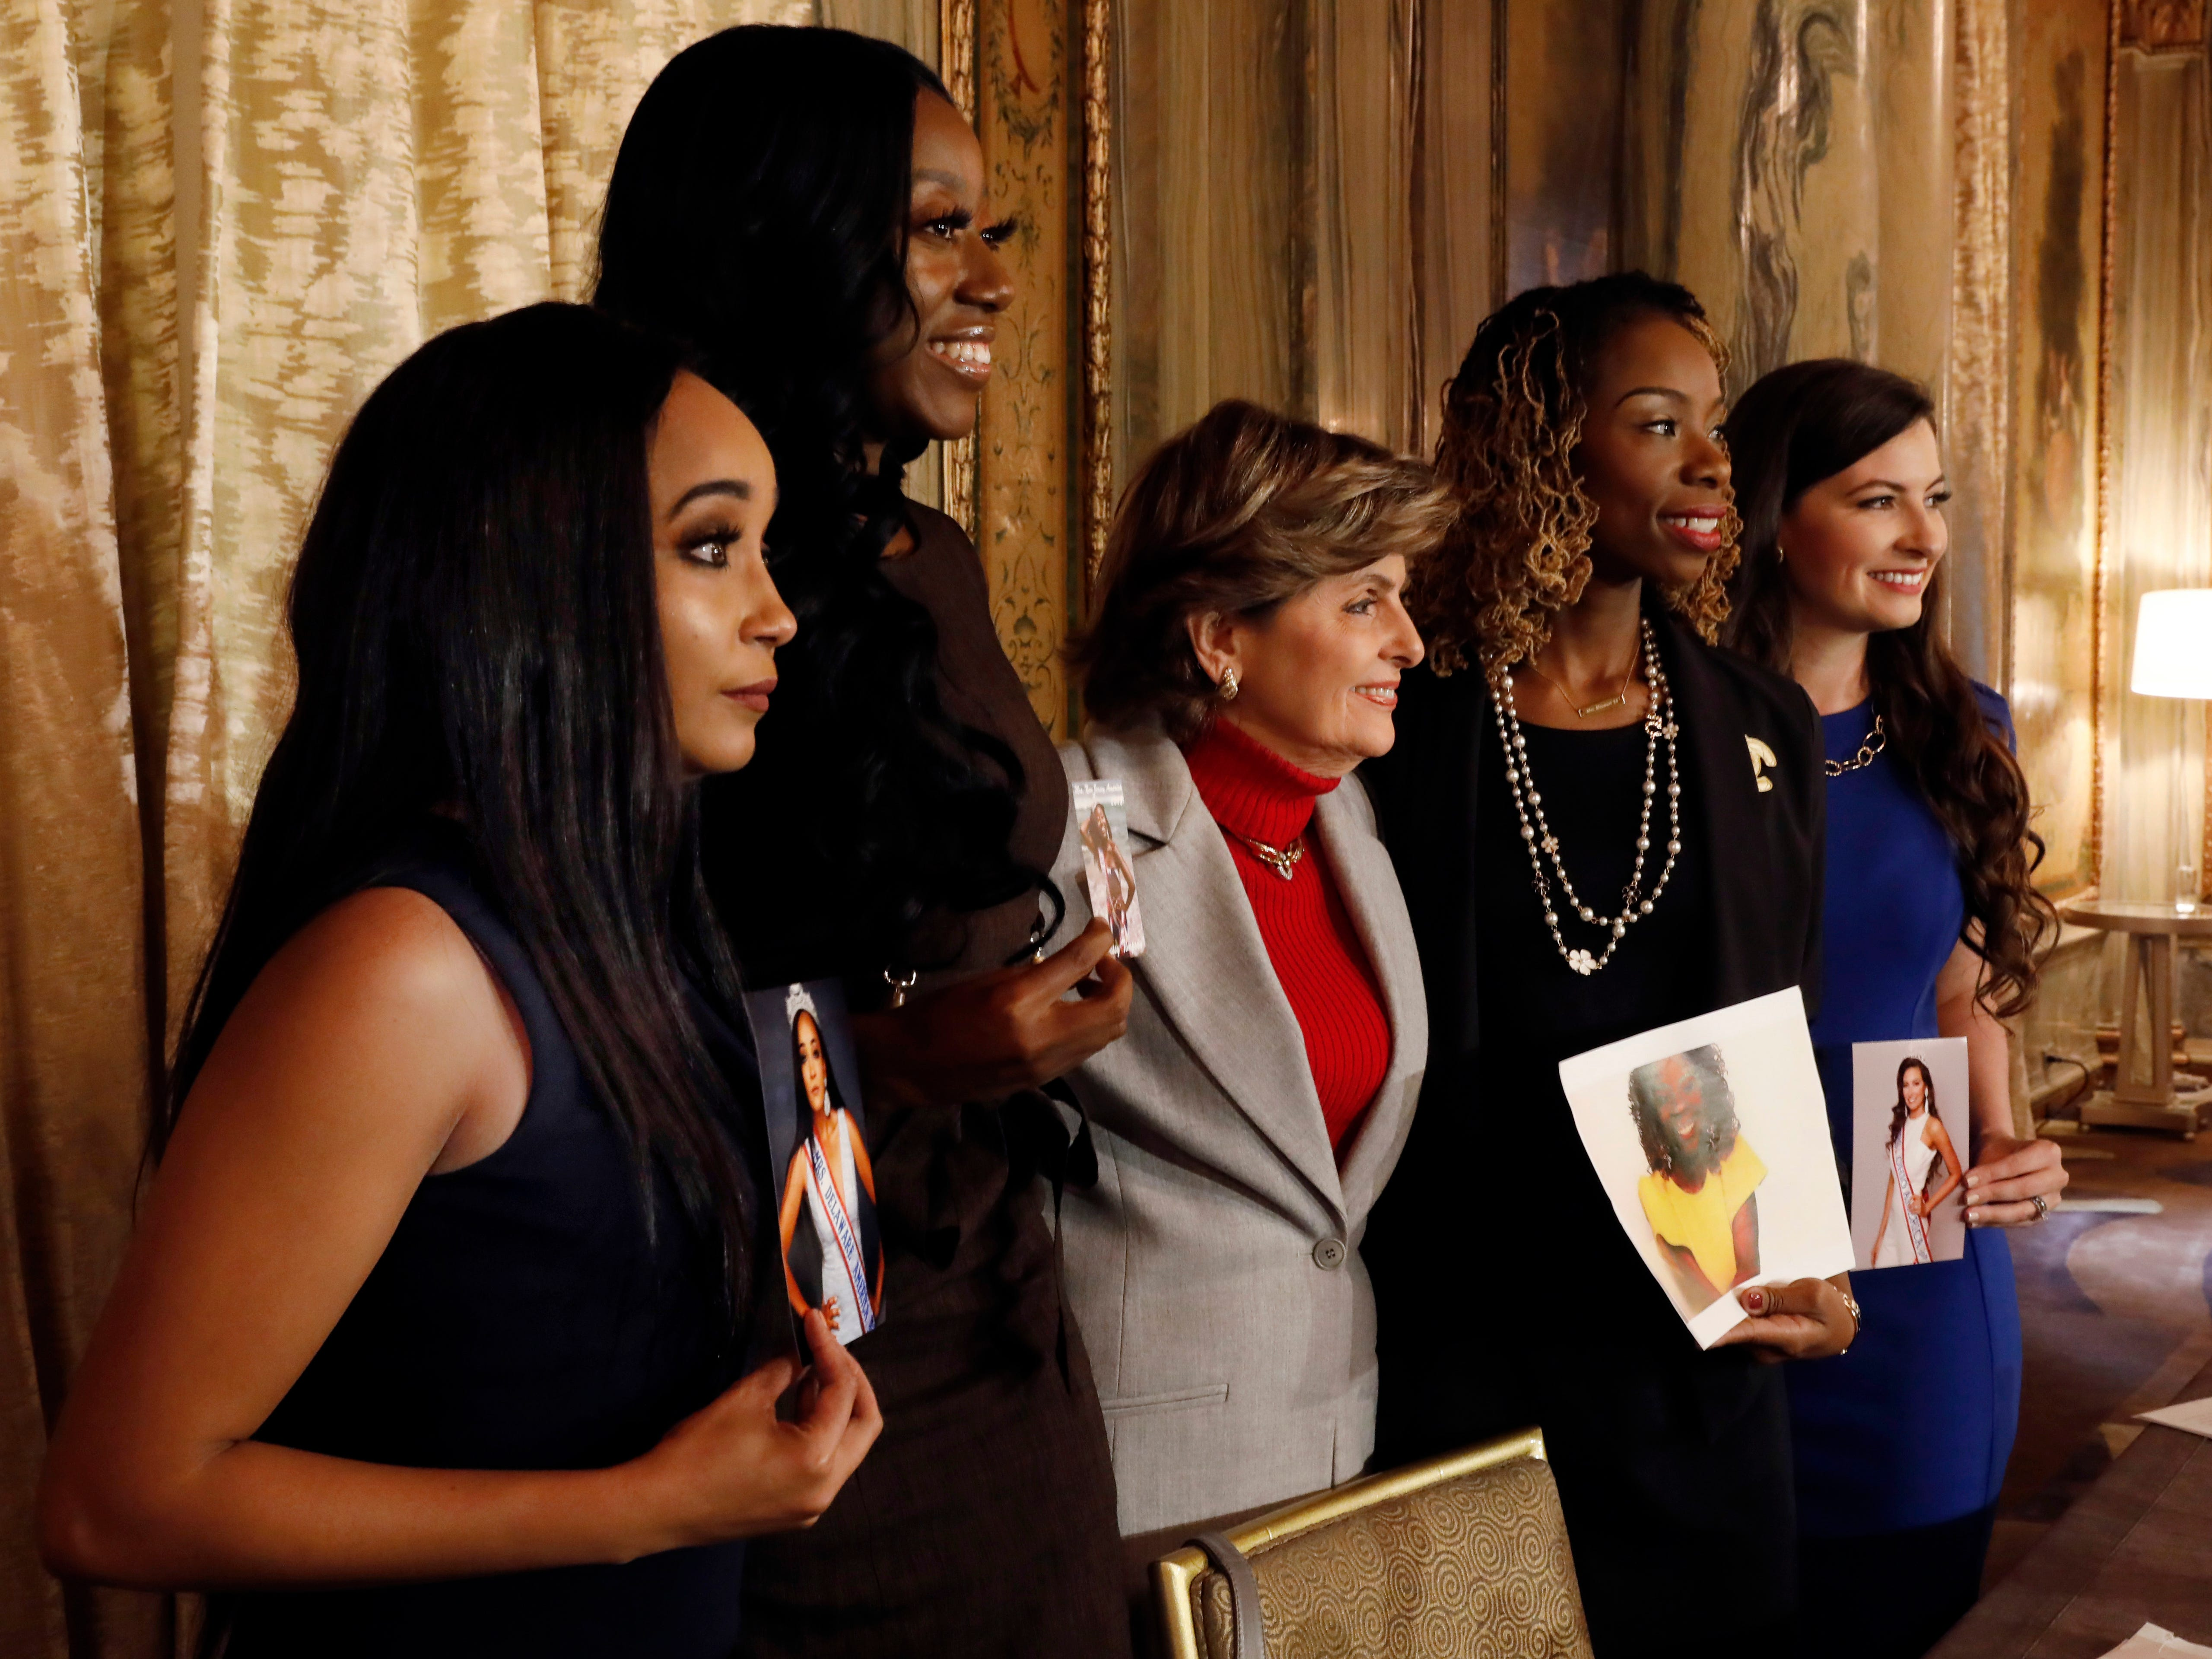 Mrs. America contestants accuse pageant co-founder of racist remarks, saying the N-word